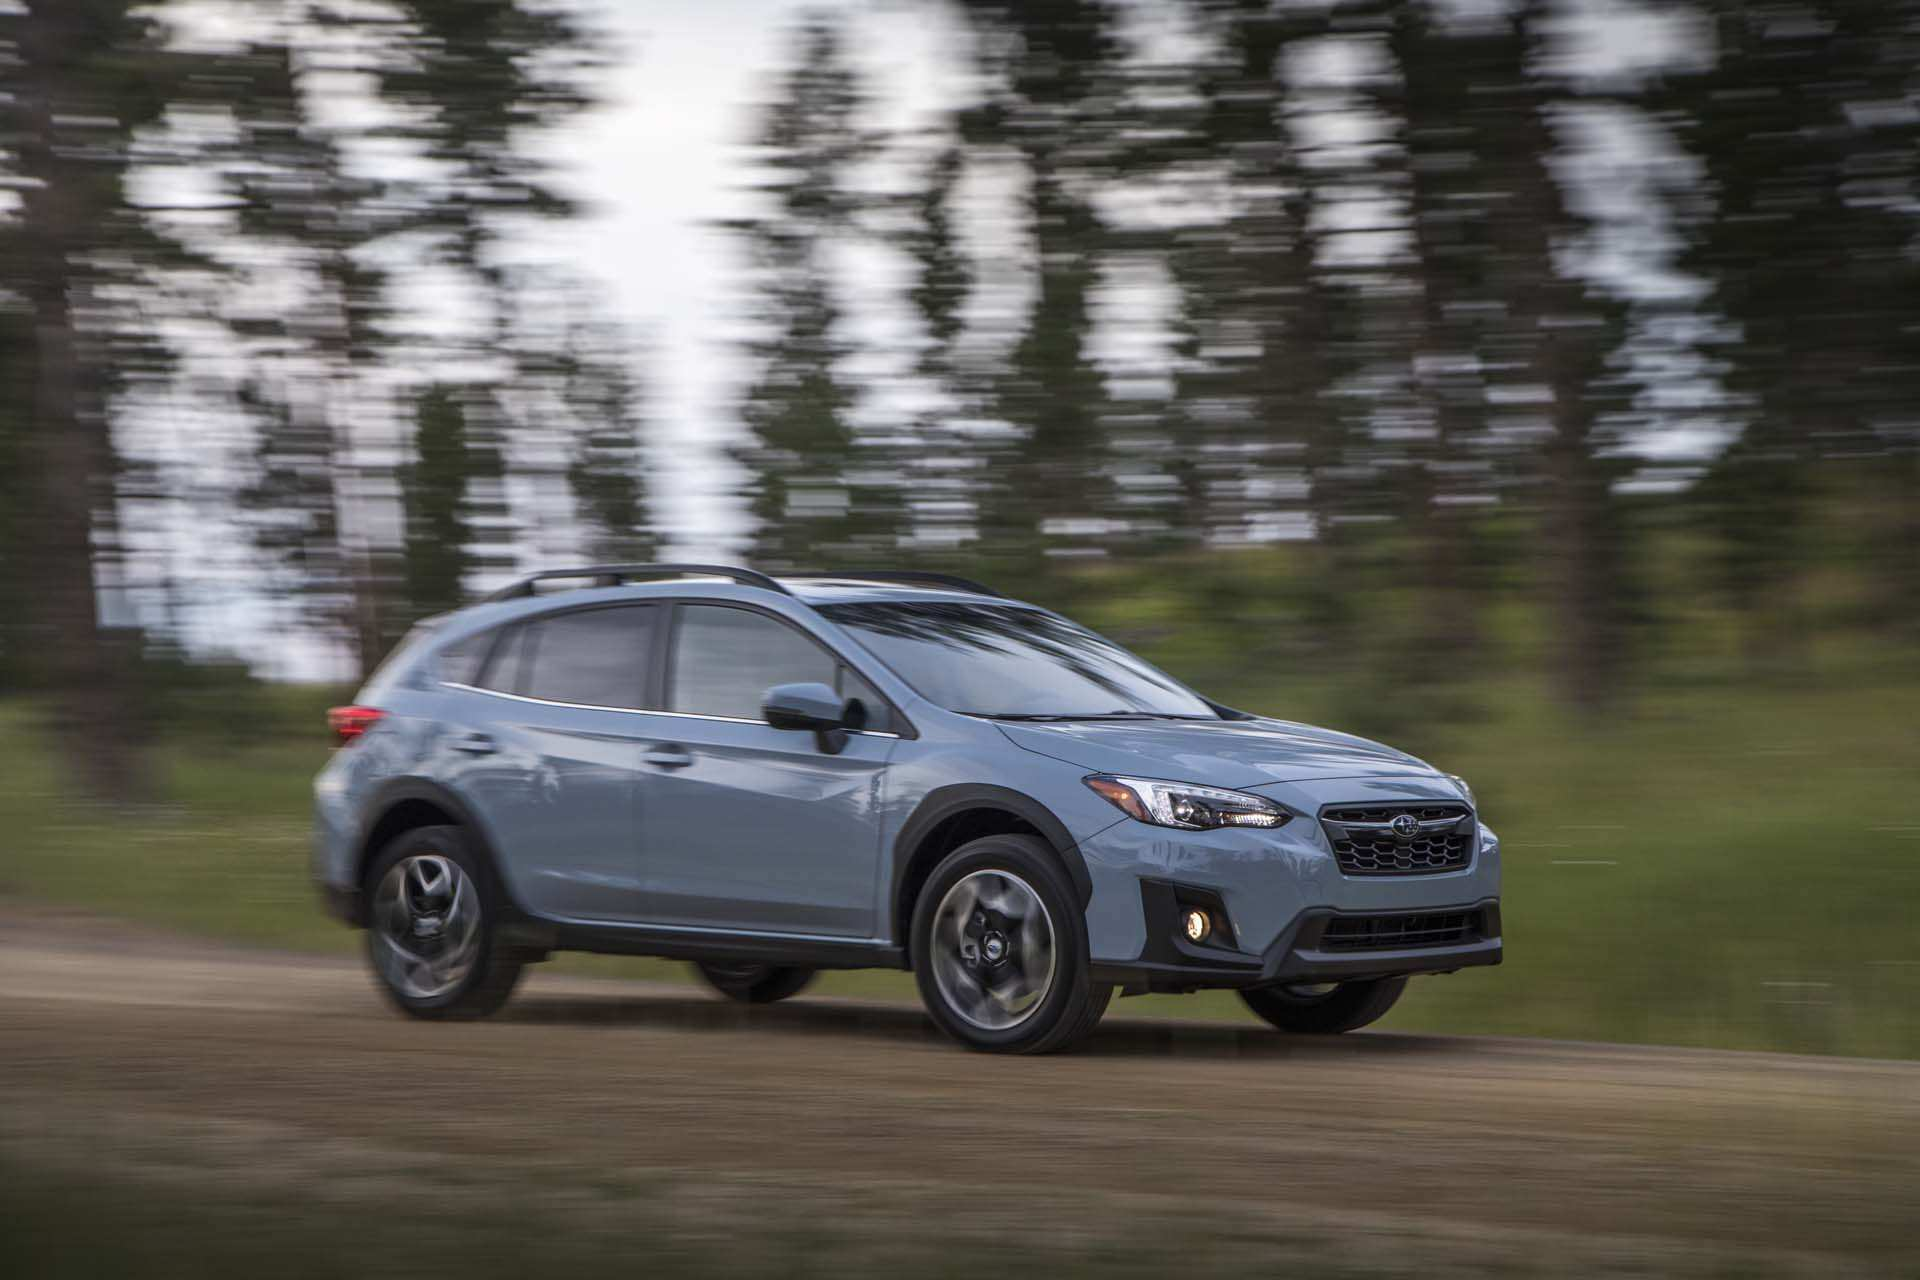 90 All New 2019 Subaru Evoltis Exterior and Interior